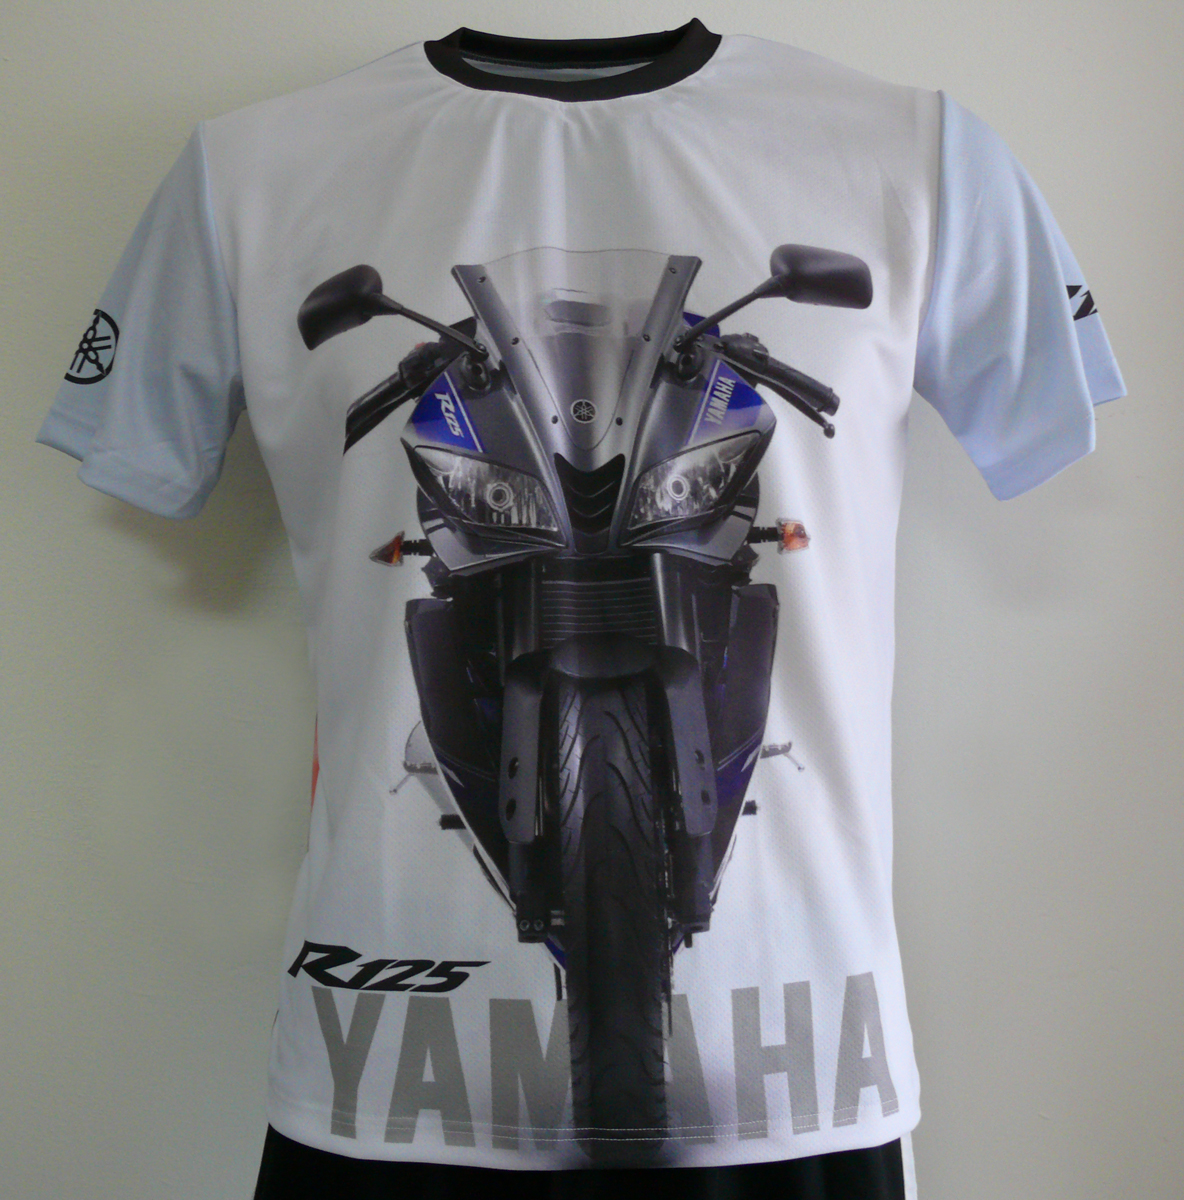 yamaha yzf r125 t shirt with logo and all over printed. Black Bedroom Furniture Sets. Home Design Ideas